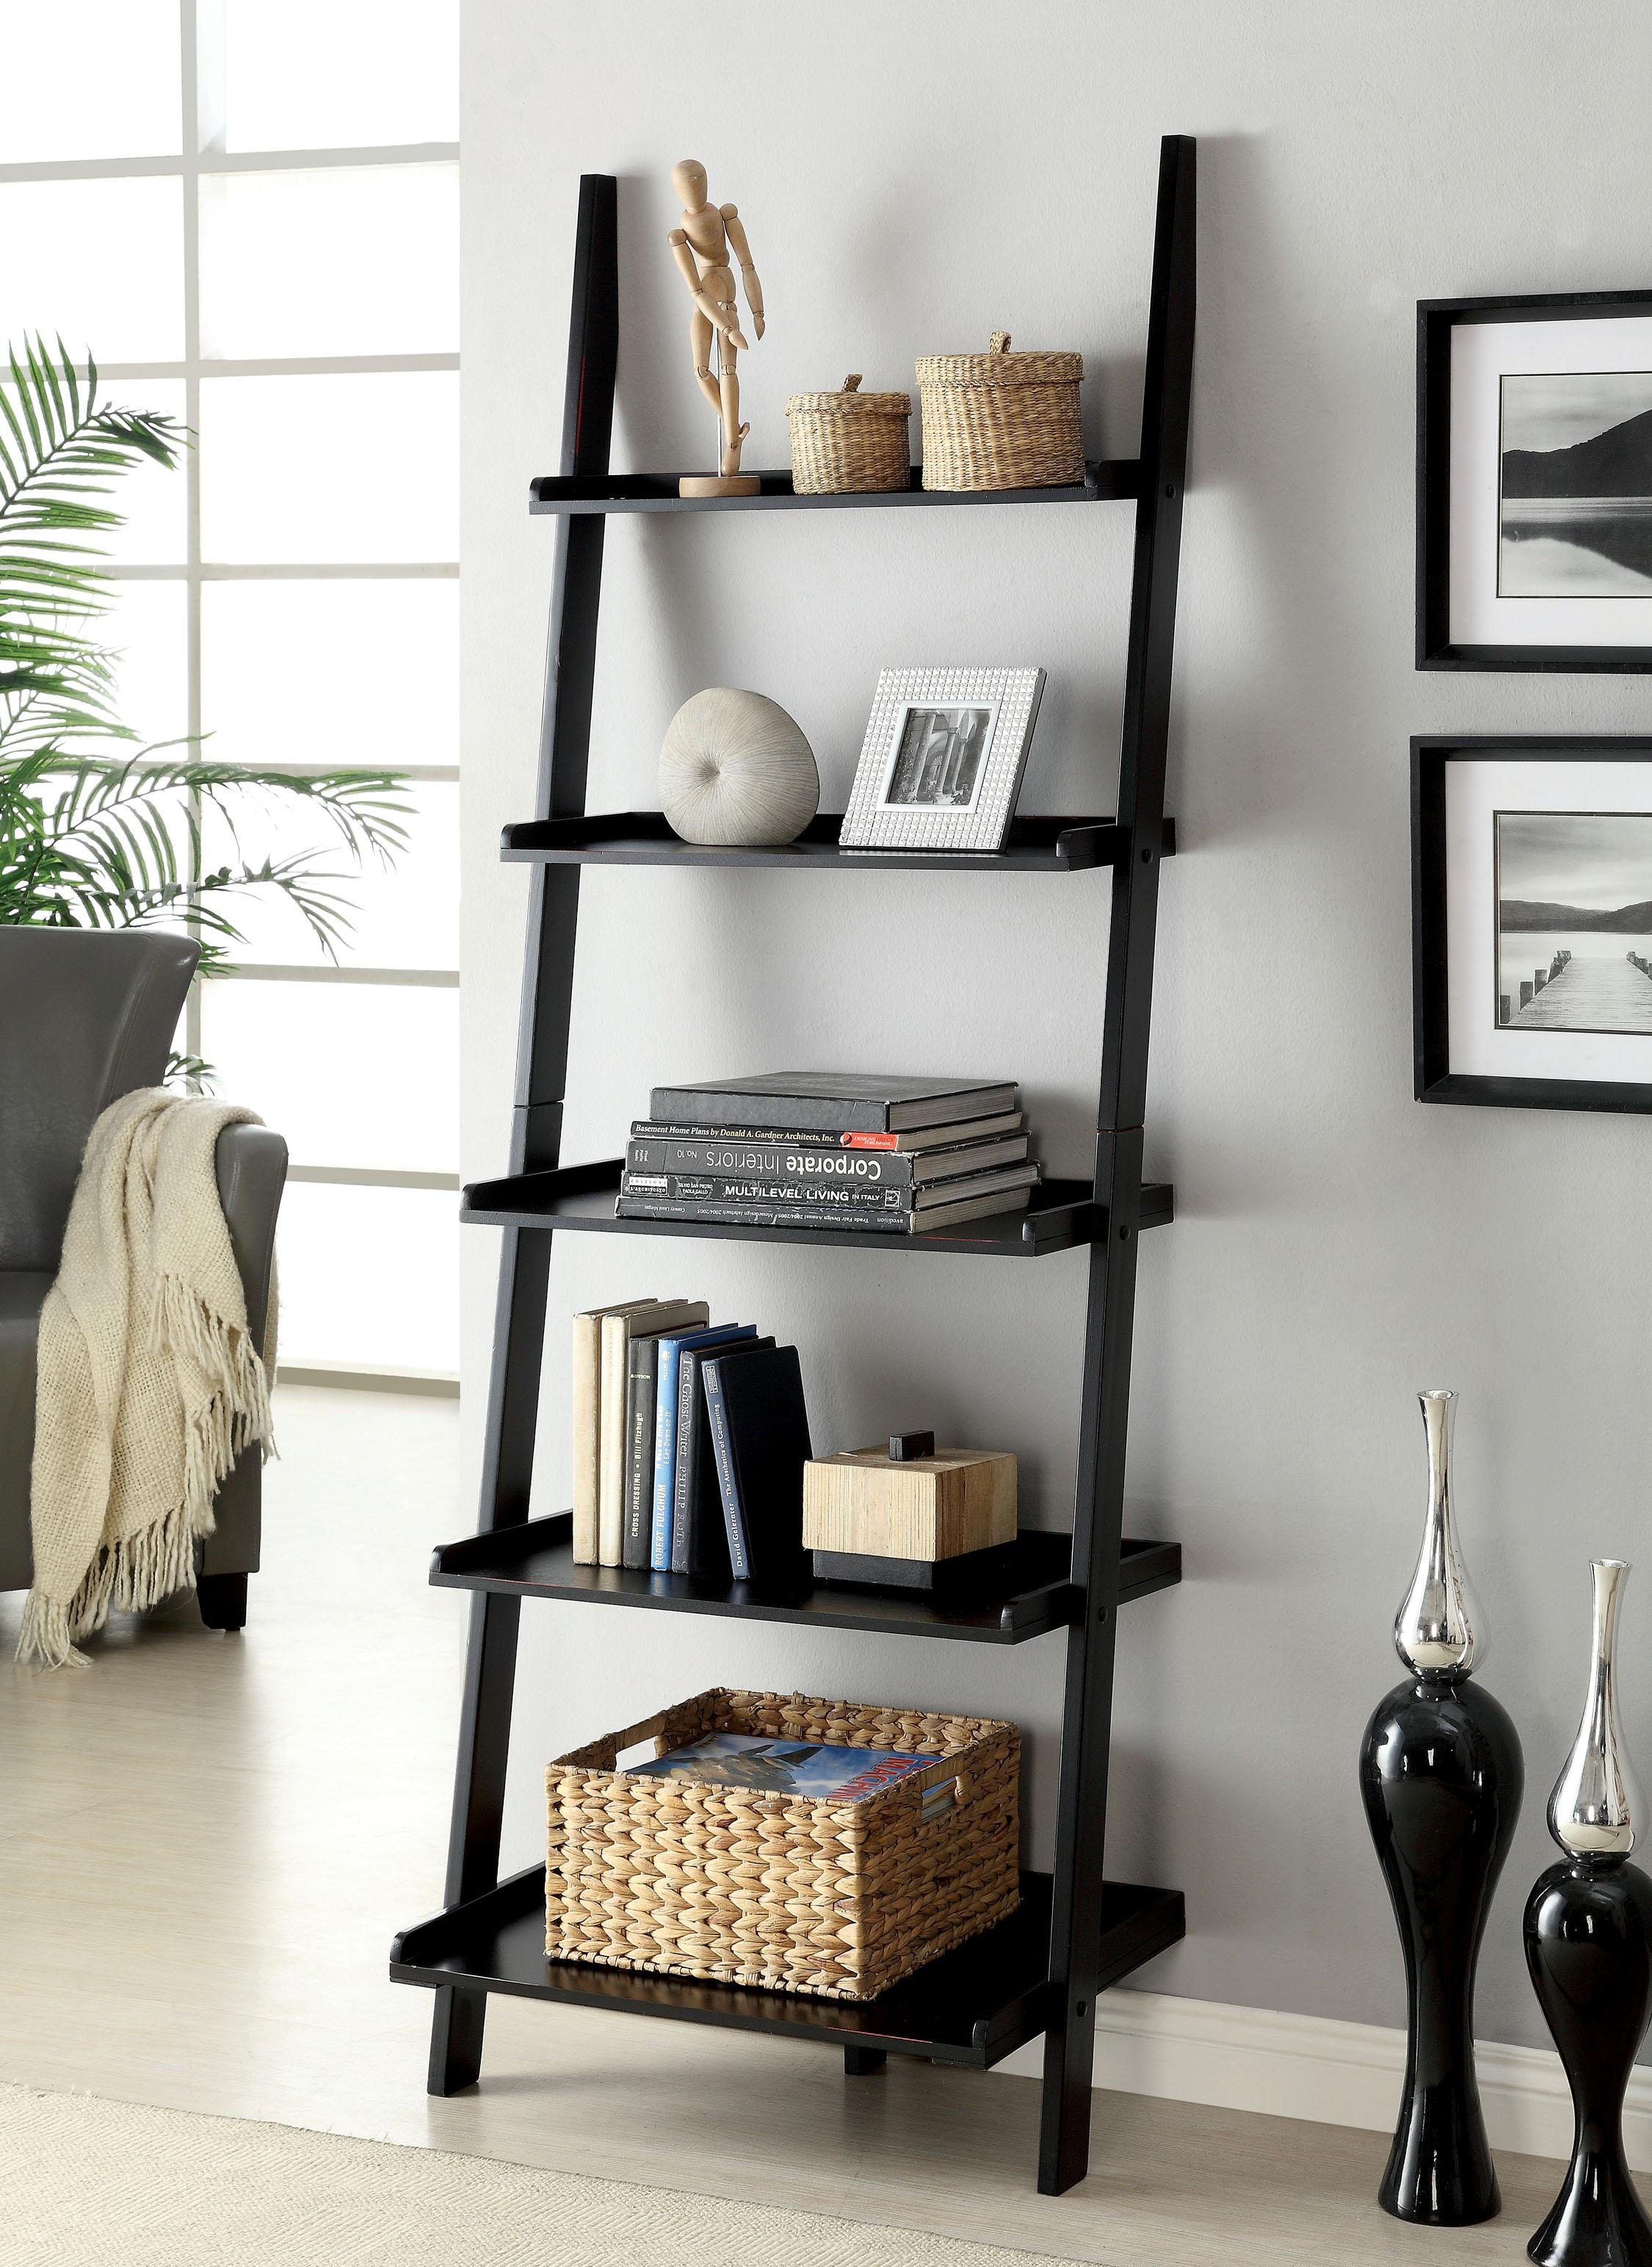 black wooden ladder bookshelf before the grey wall with picture for living room decor ideas